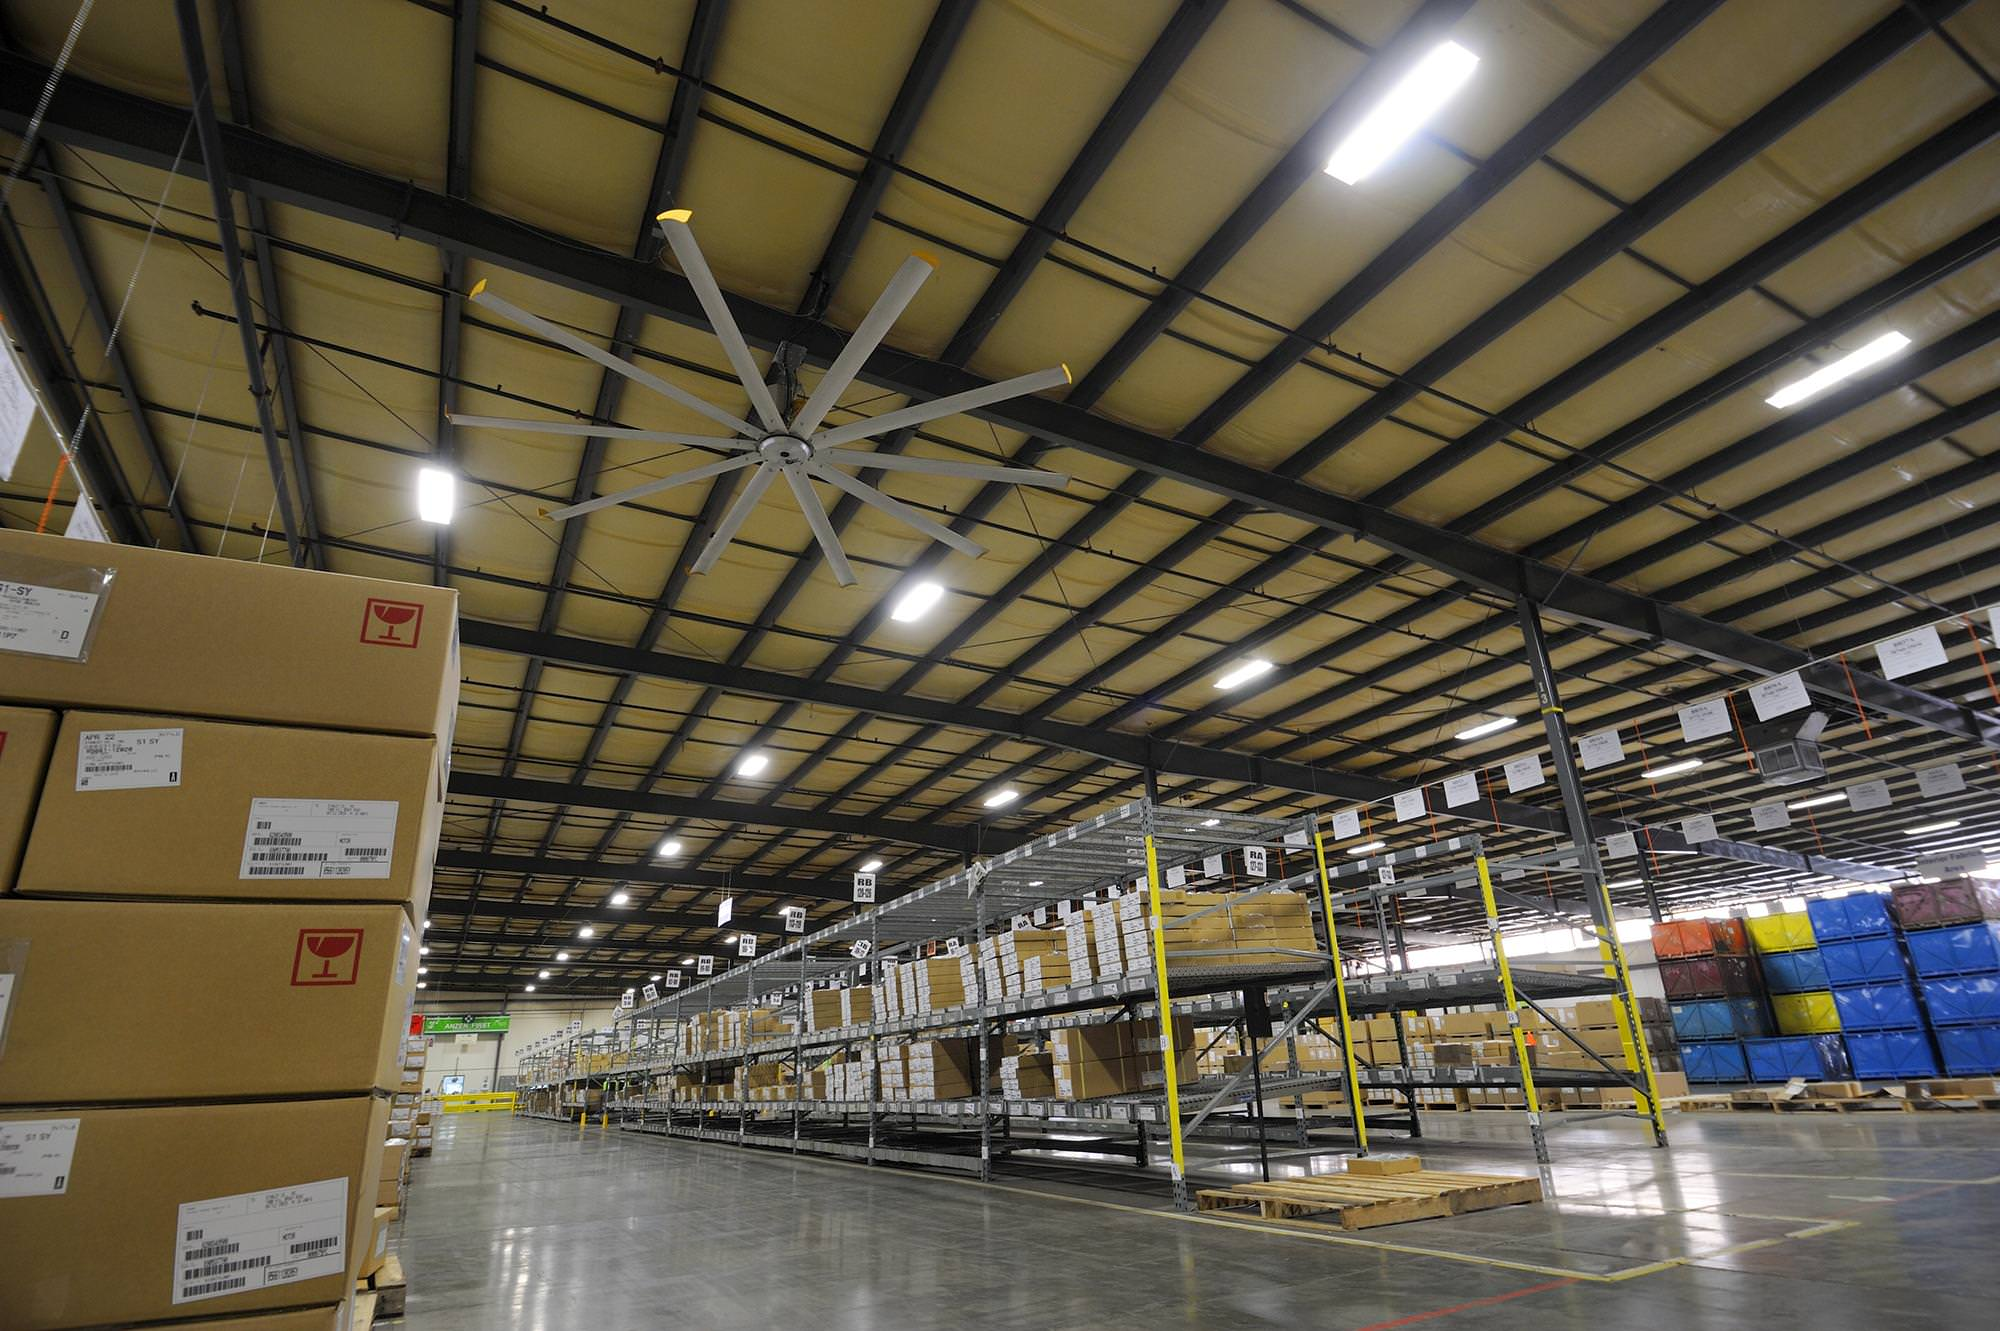 Warehouse Ceiling Fans from Big Ass Fans can Save You Up